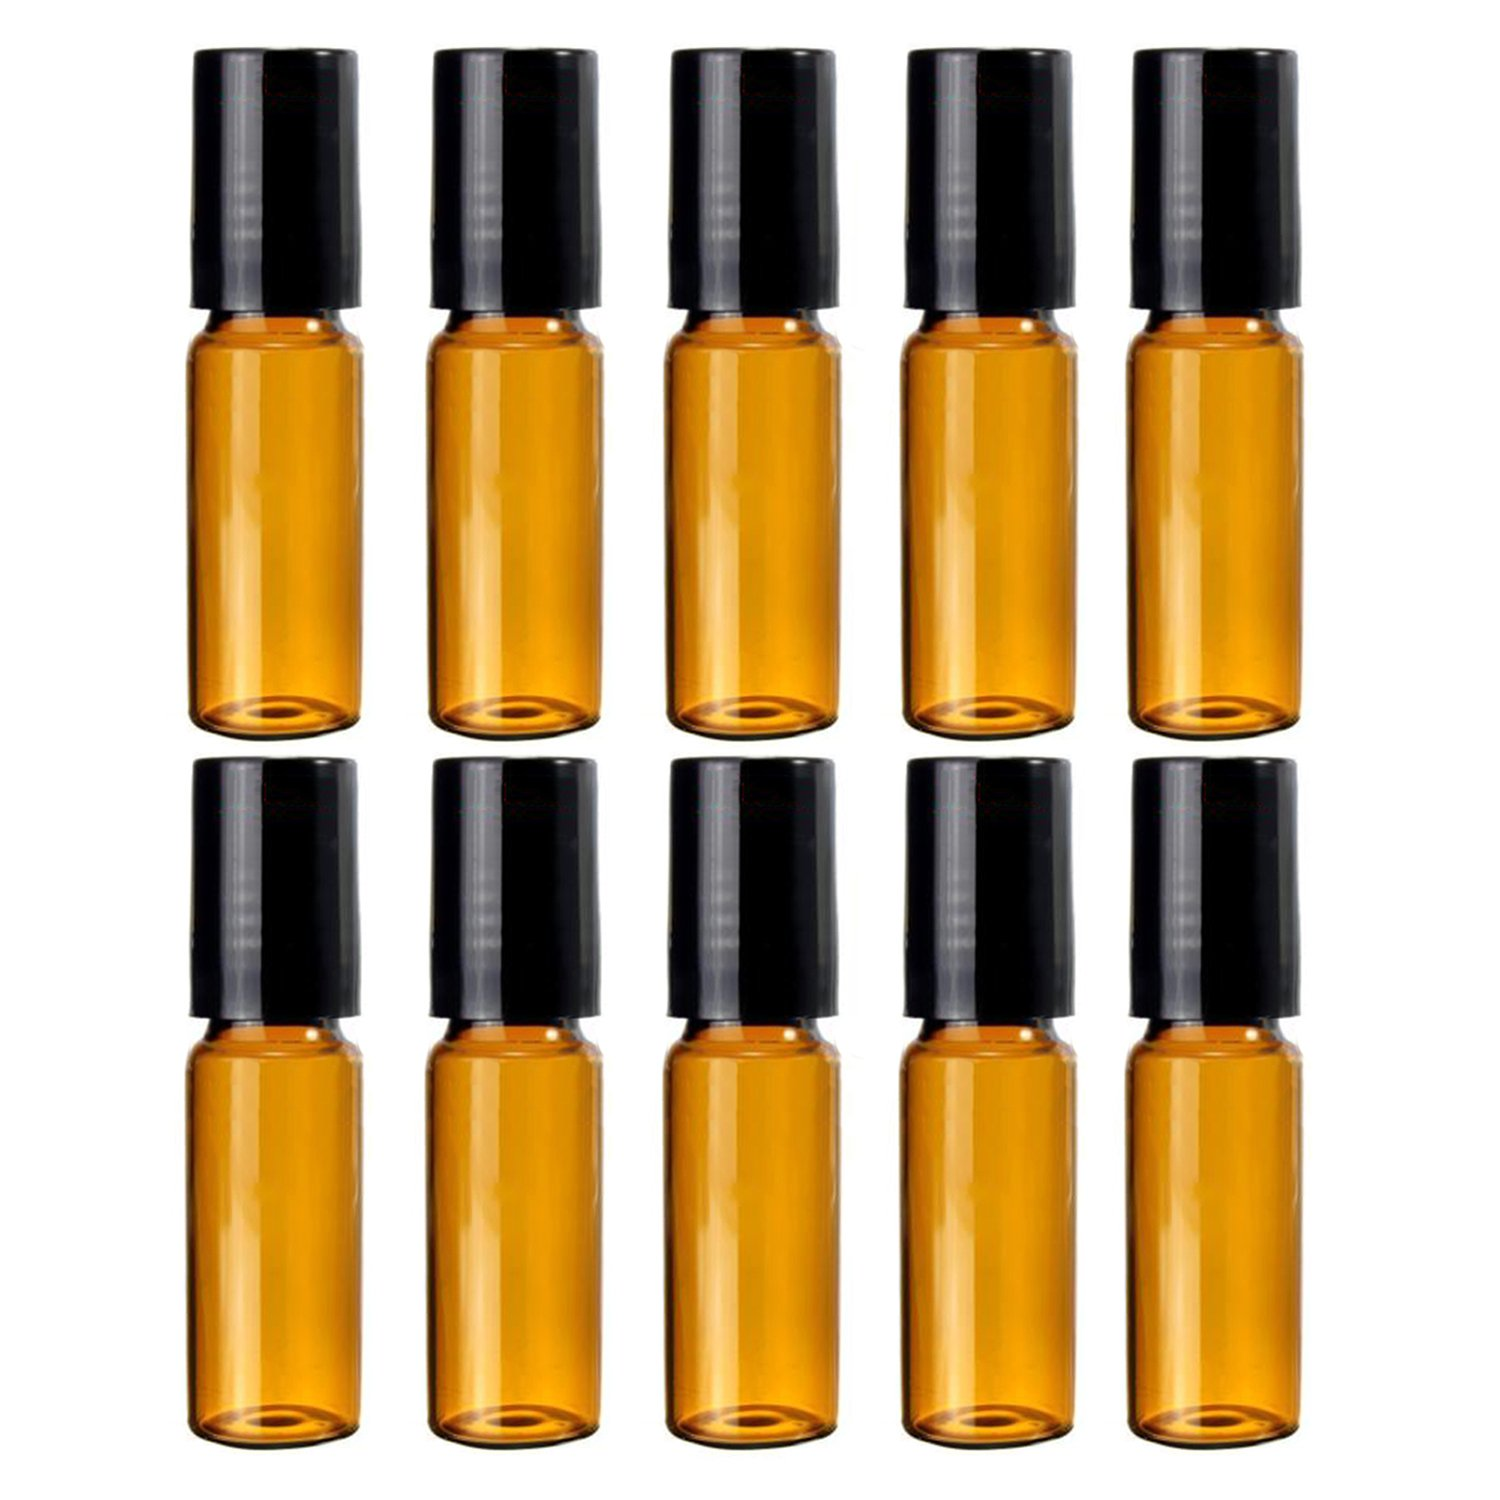 Gemini_mall® 10pcs Empty Refillable Plastic Roller Bottles(10ml) With Stainless Steel Roller Ball for Essential Oil, Perfume, Serum, Cosmetics, Lotion, Treatment, Home and Travel Outdoor Suitable